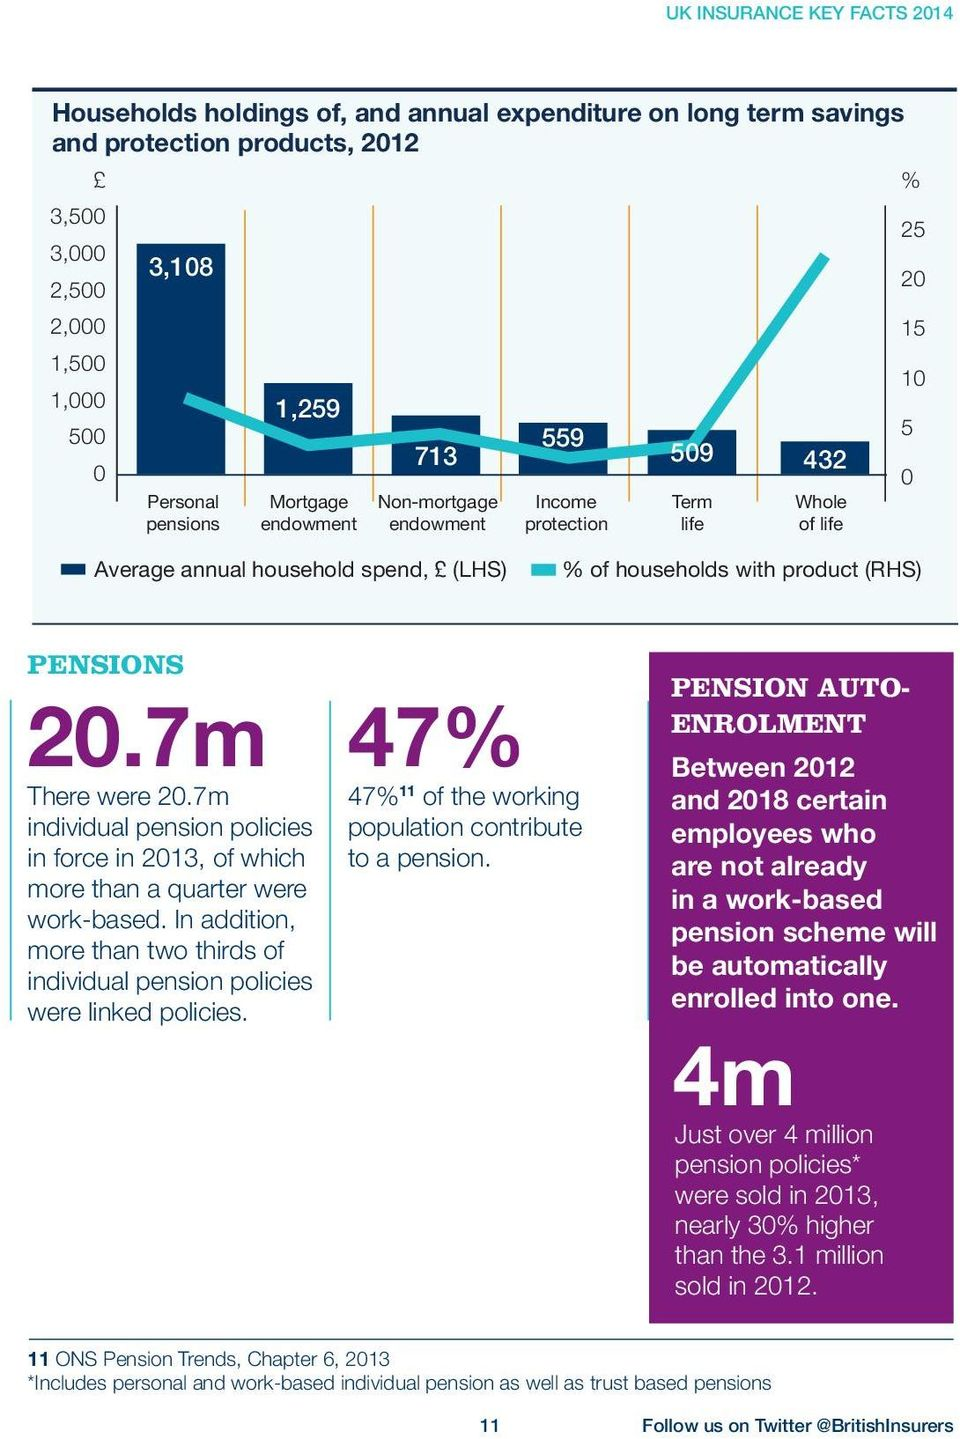 20.7m There were 20.7m individual pension policies in force in 2013, of which more than a quarter were work-based.